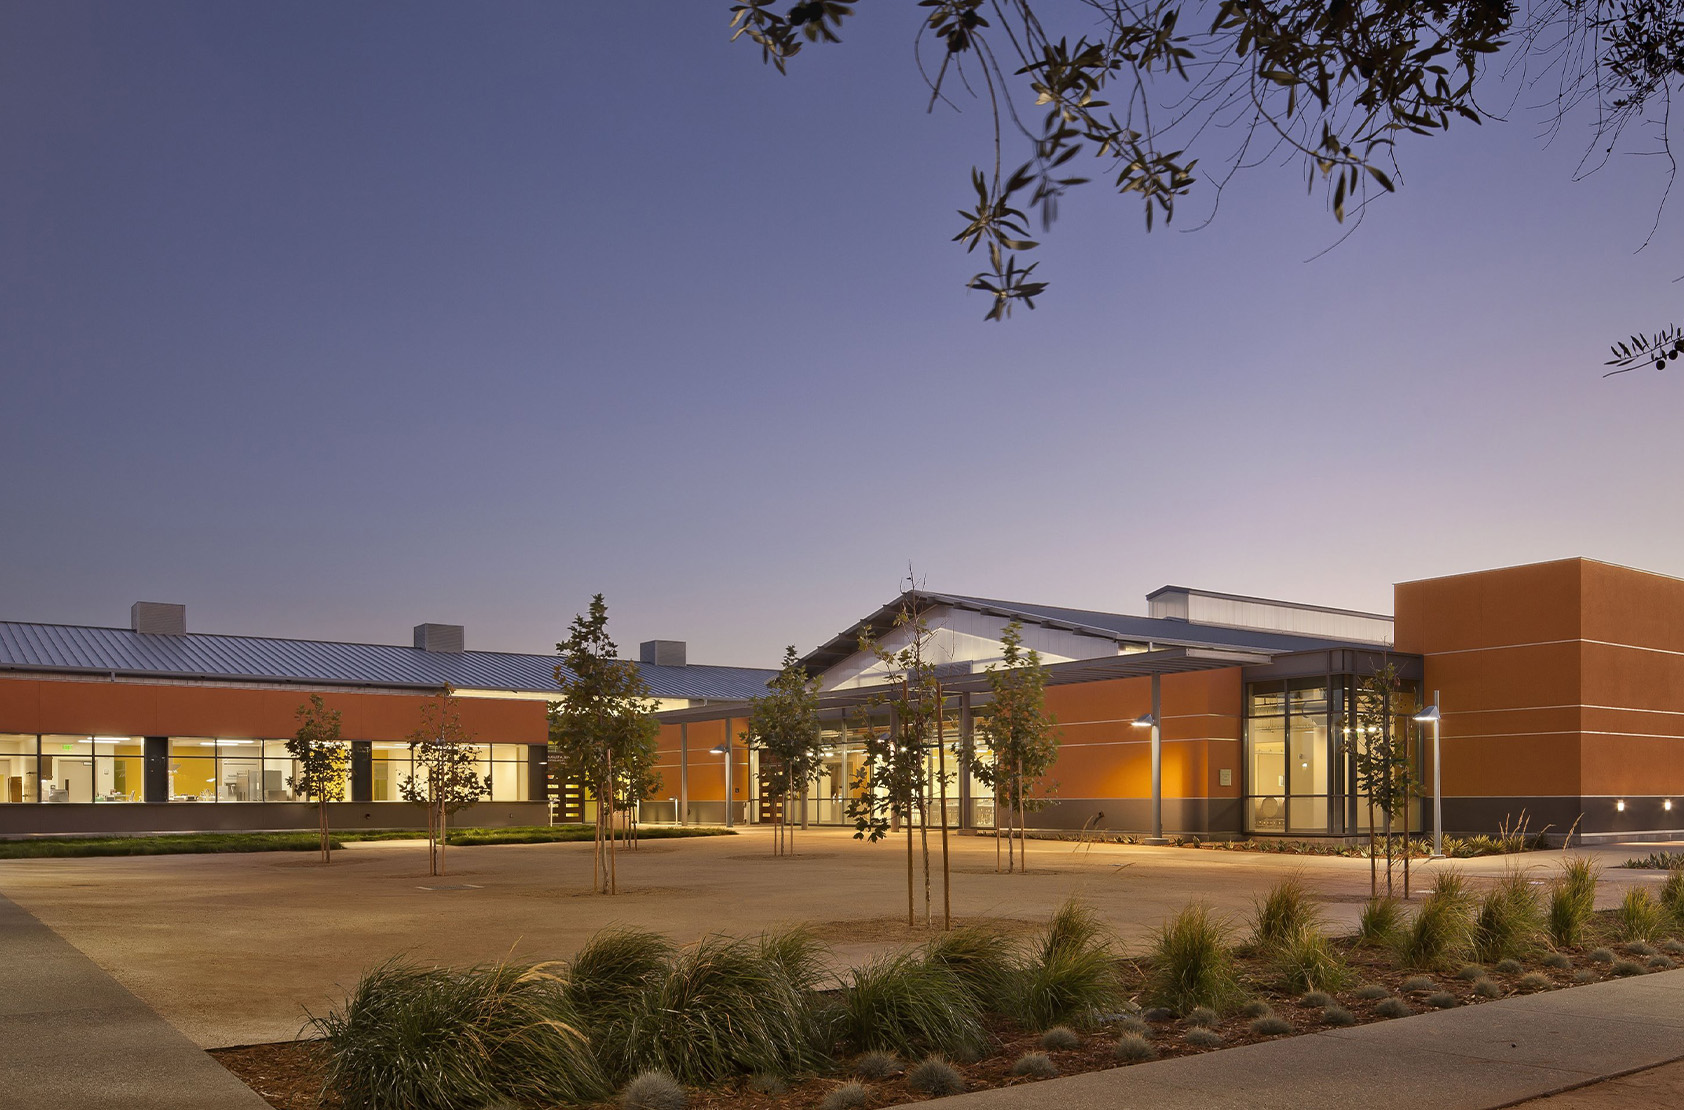 University of California - Wine, Beer and Food Laboratory